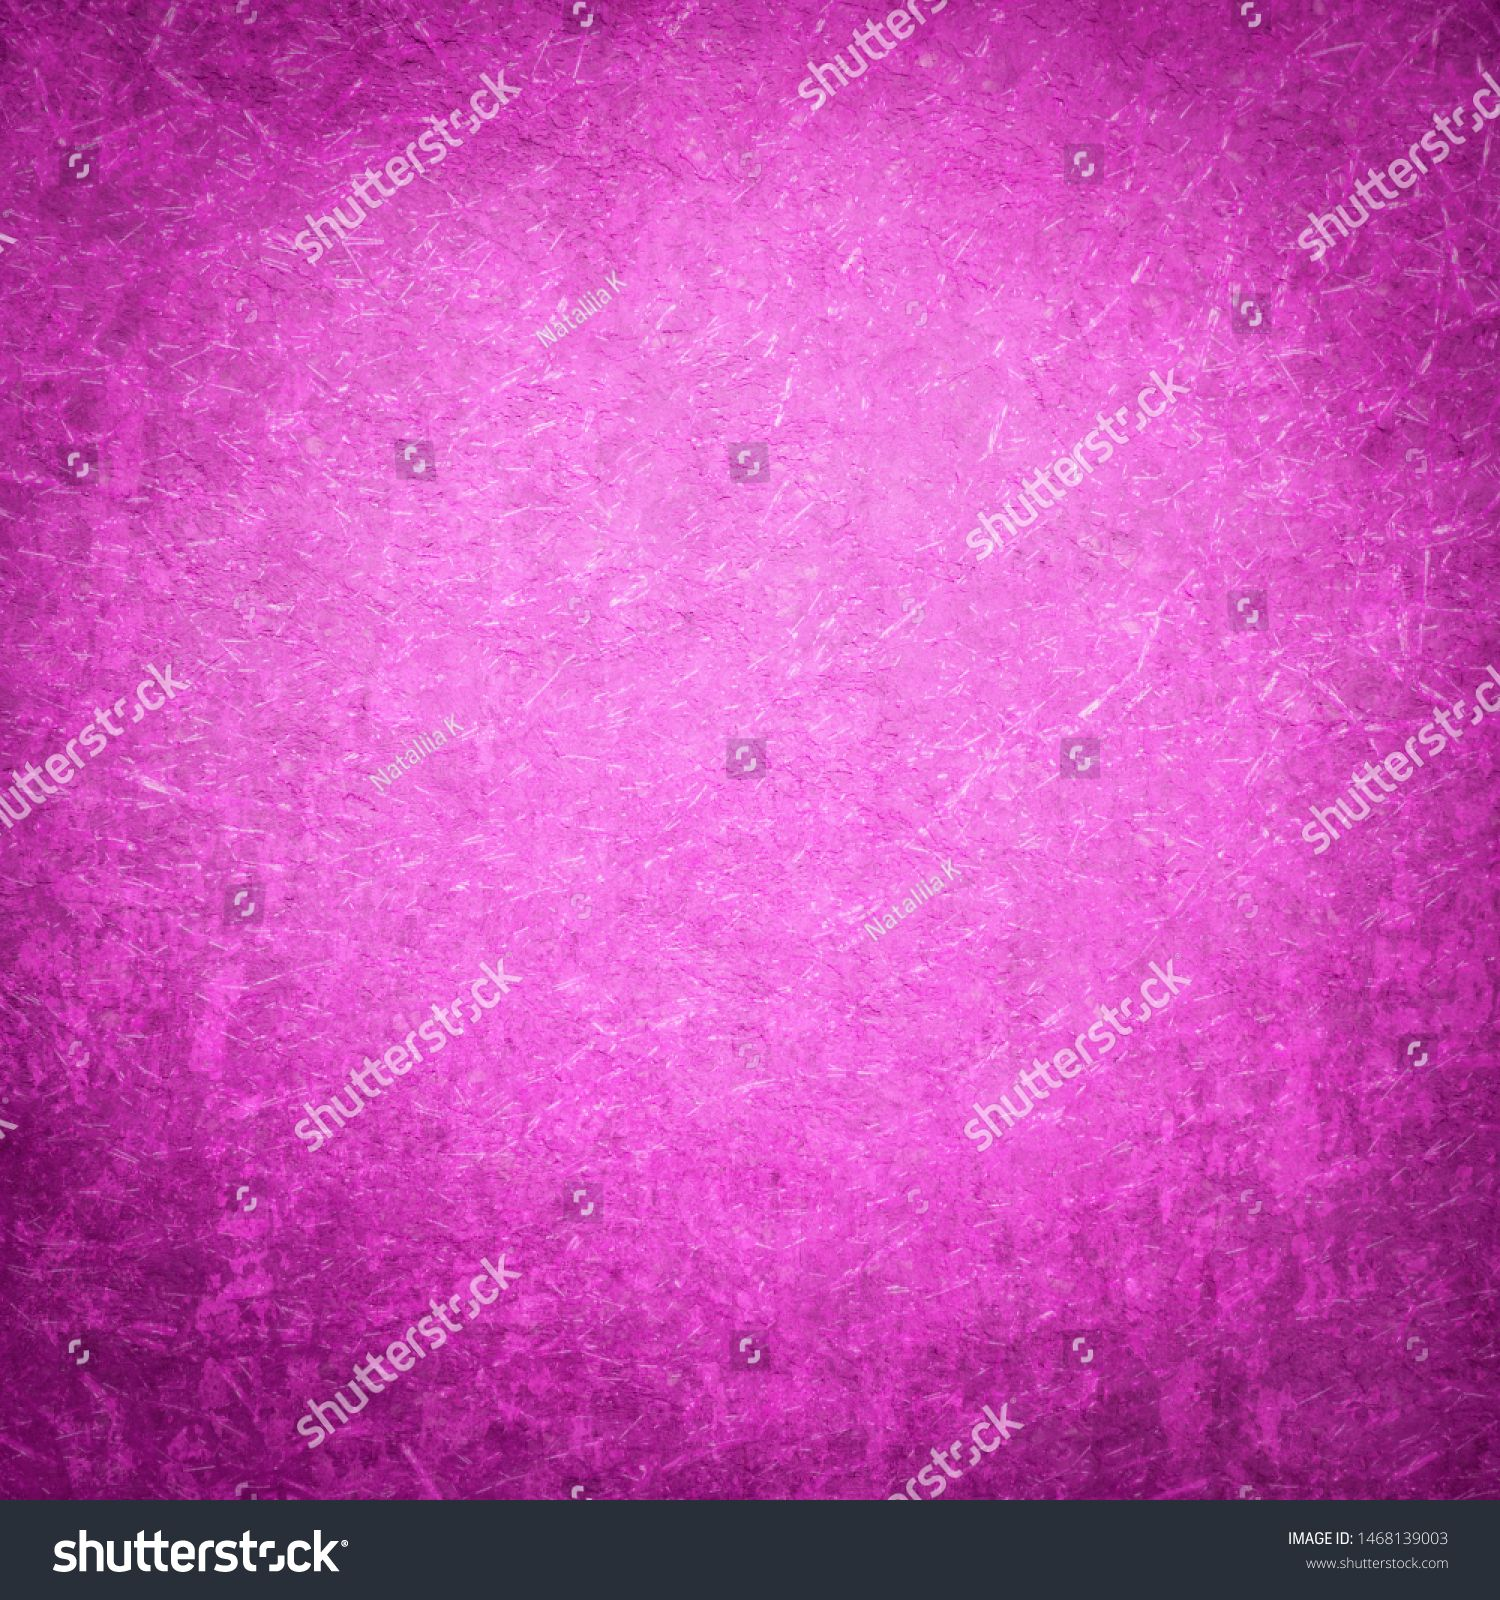 Abstract Pink Background With Vintage Grunge Background Texture Sponsored Sponsored Background Pink Abstract Texture